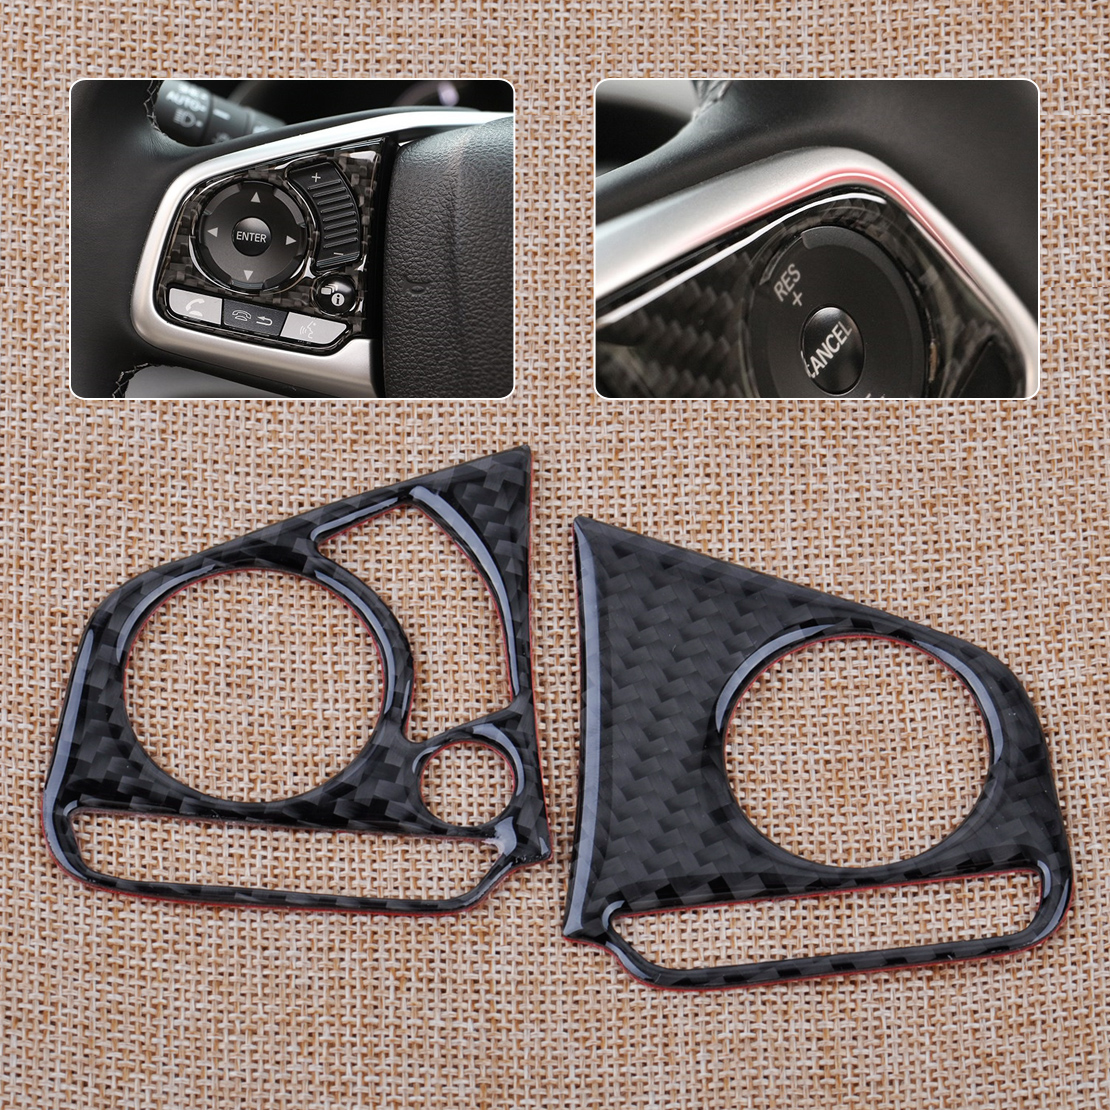 CITALL 2pcs car-styling Carbon Fiber Auto Steering Wheel Button Cover Trim Decor Fit For Honda Civic 10th 2016 carbon fiber car leather car central armrest console cover for honda civic 10th 2016 2017 2018 accessories